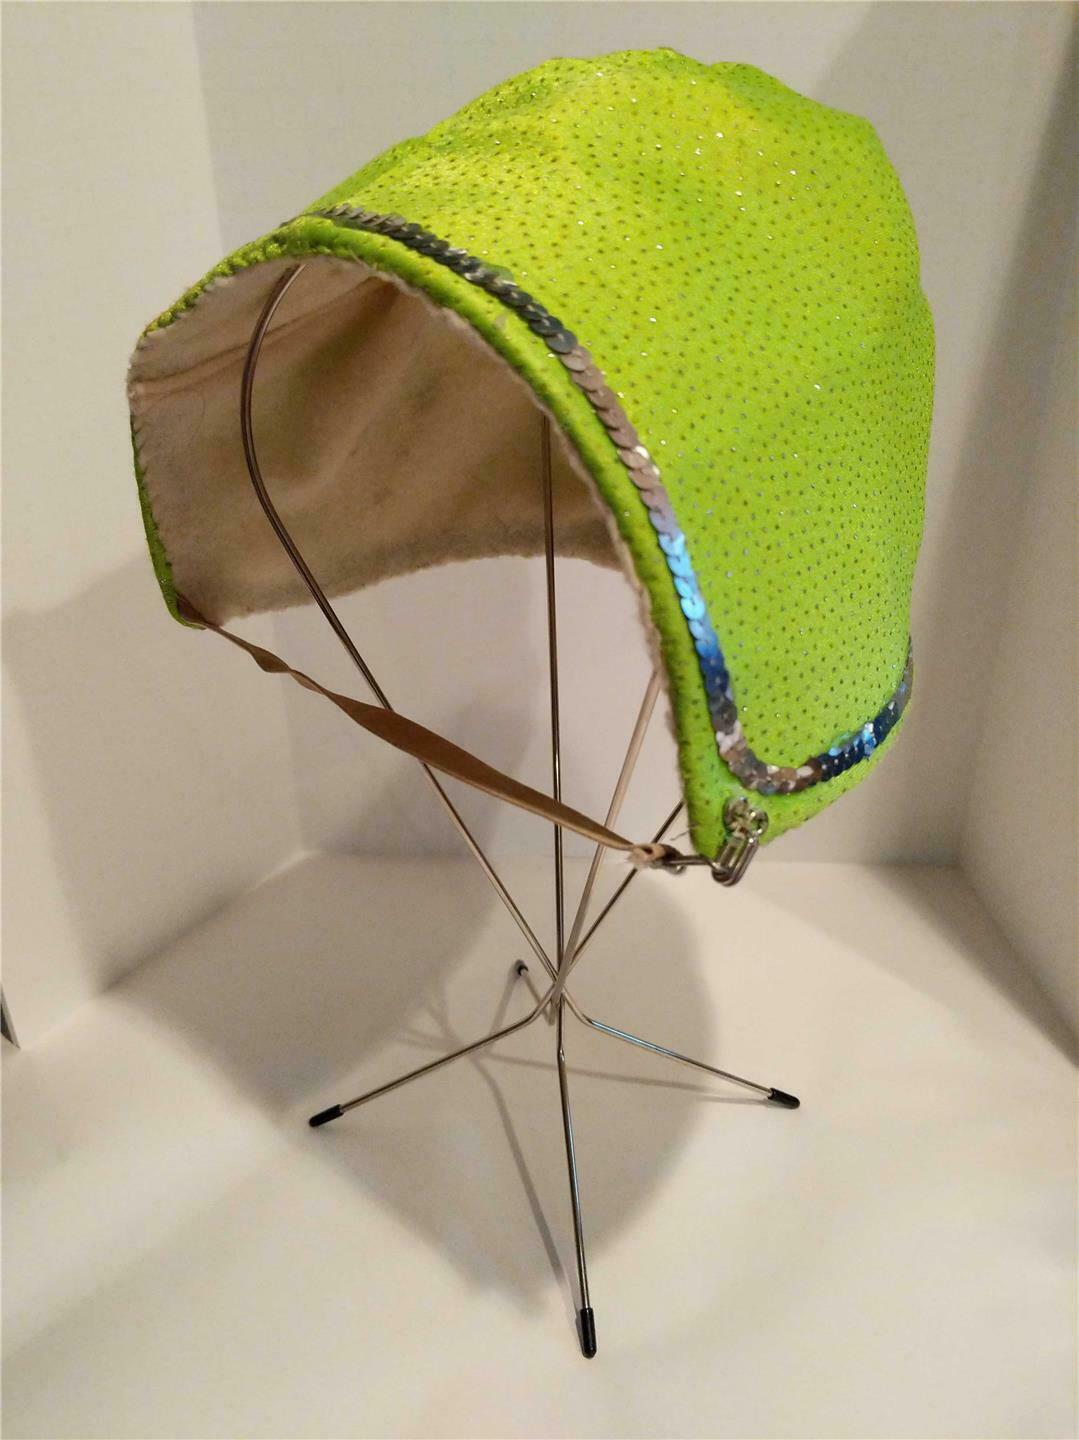 Primary image for Circus Performance Bartok Hat Lime Green Sparkles Royal Hanneford Circus Sarasot